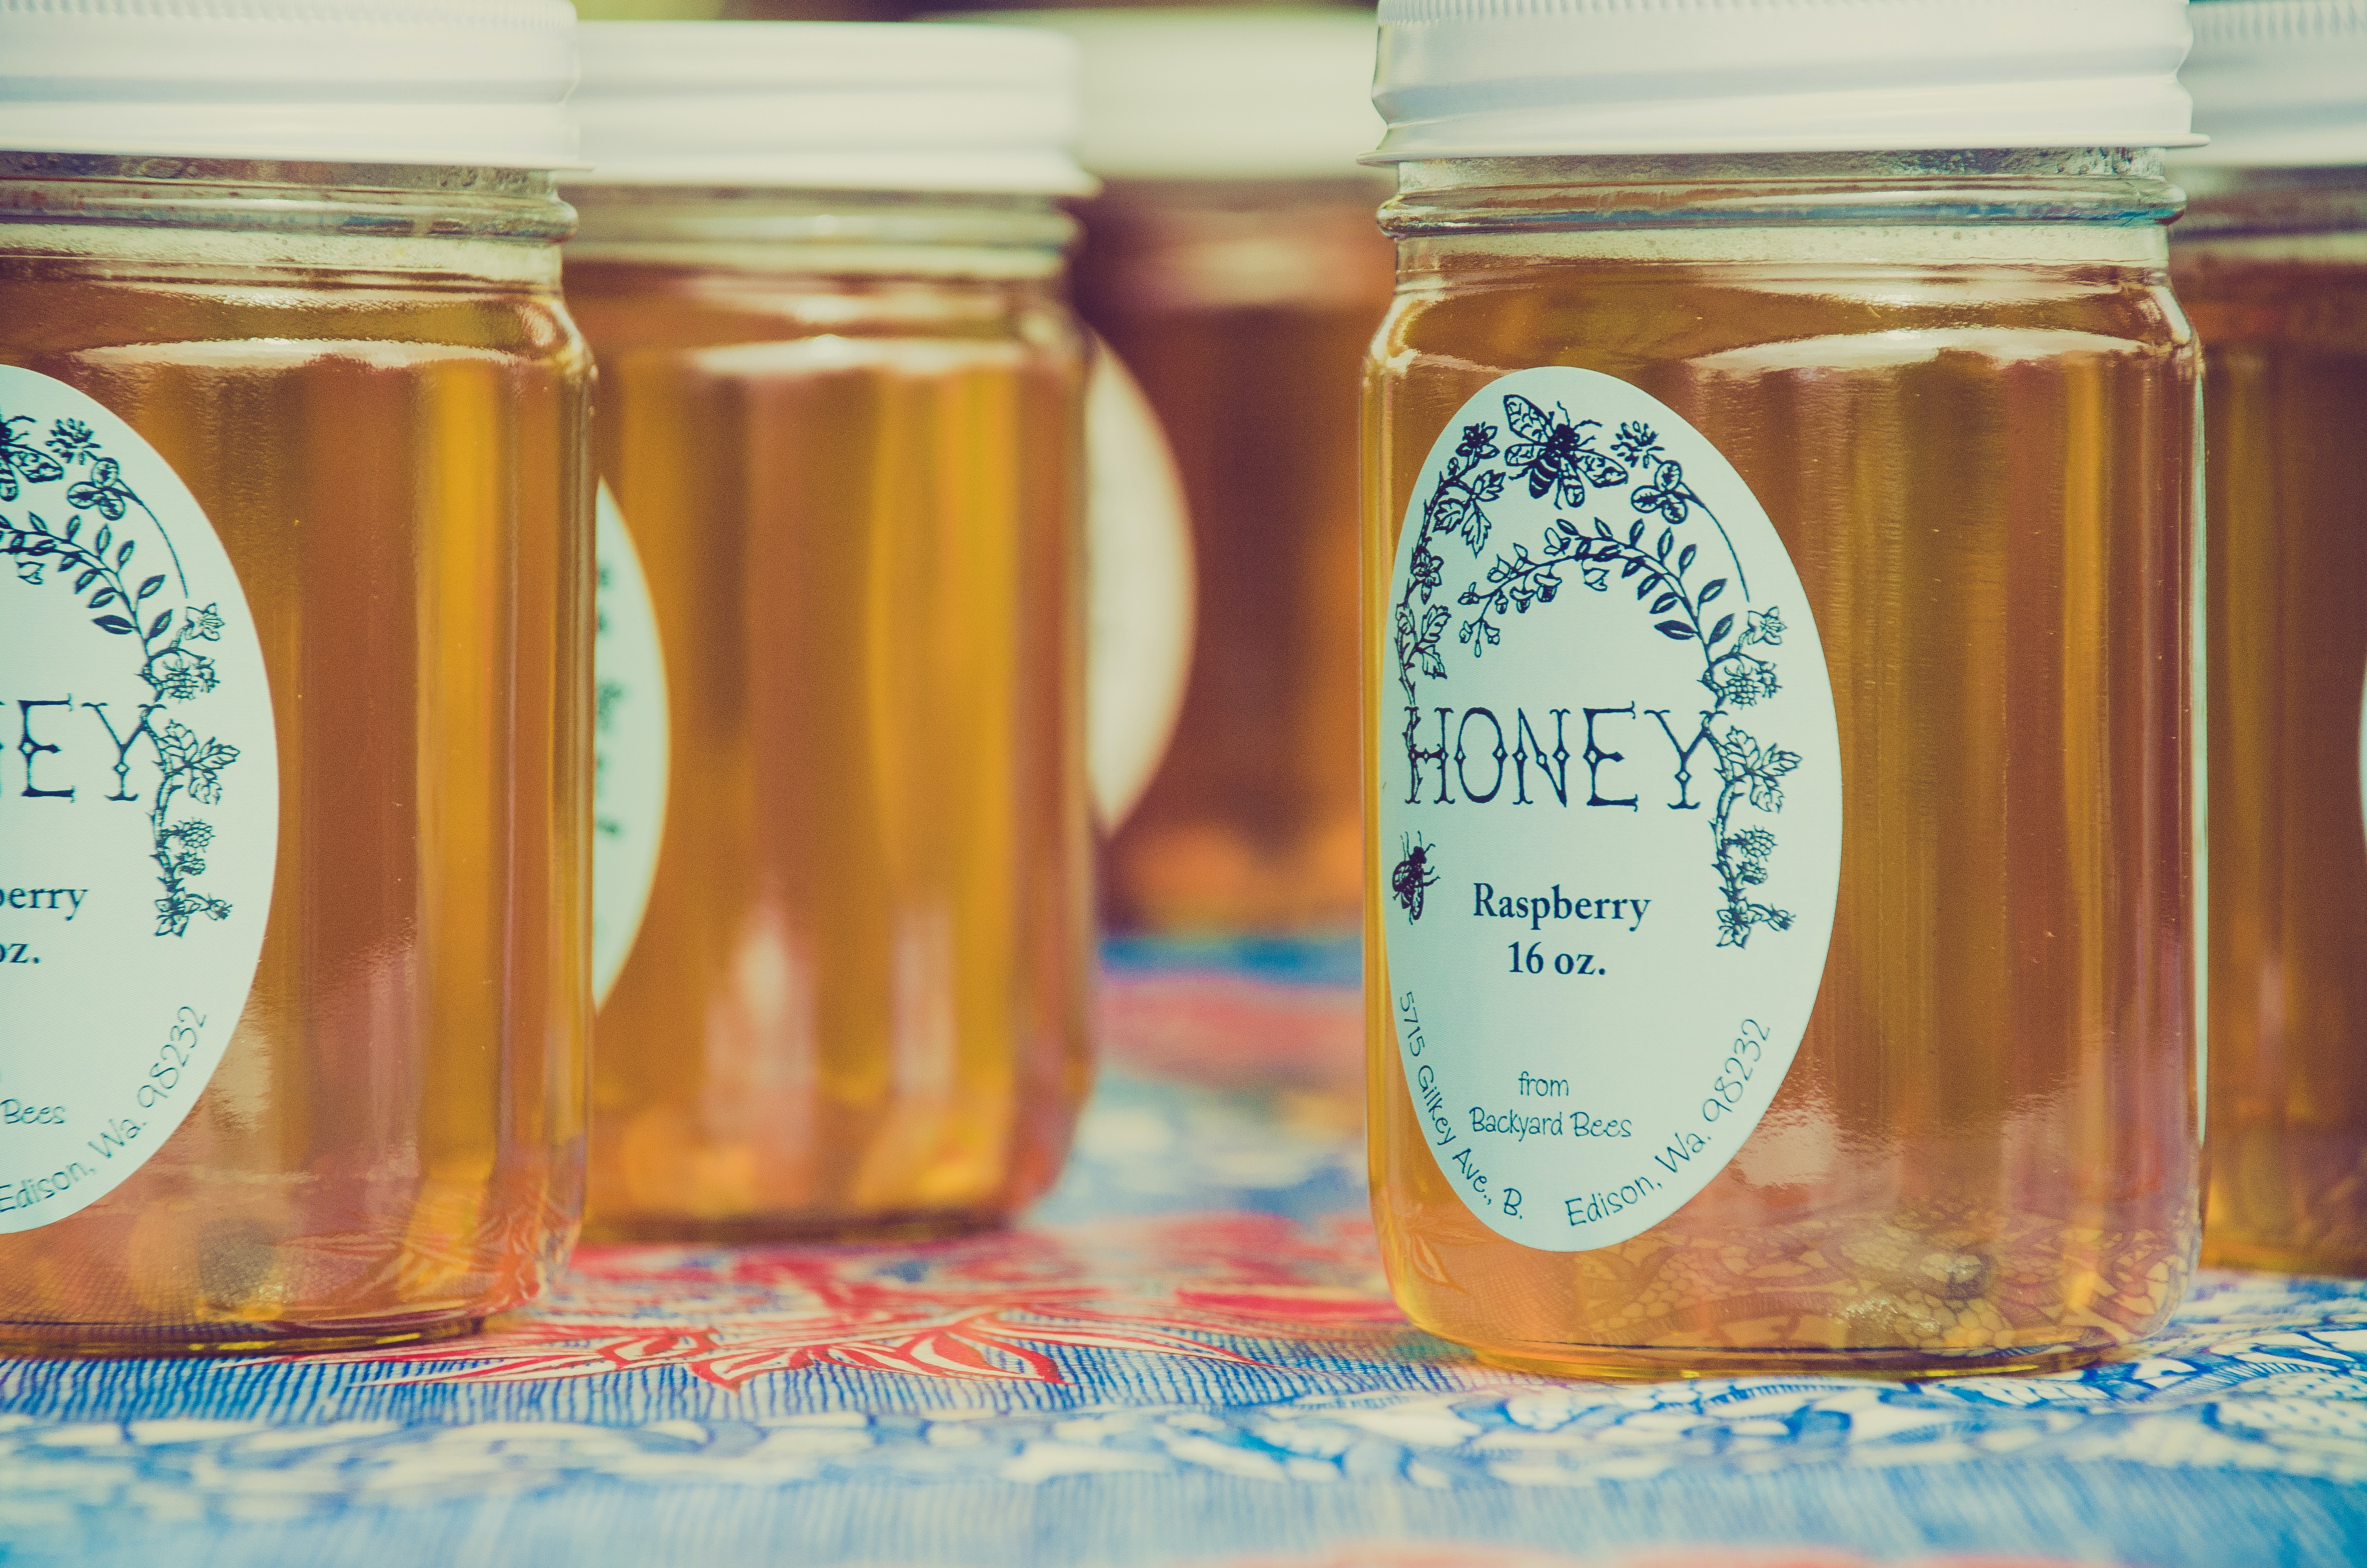 Jars of local honey with decorative labels